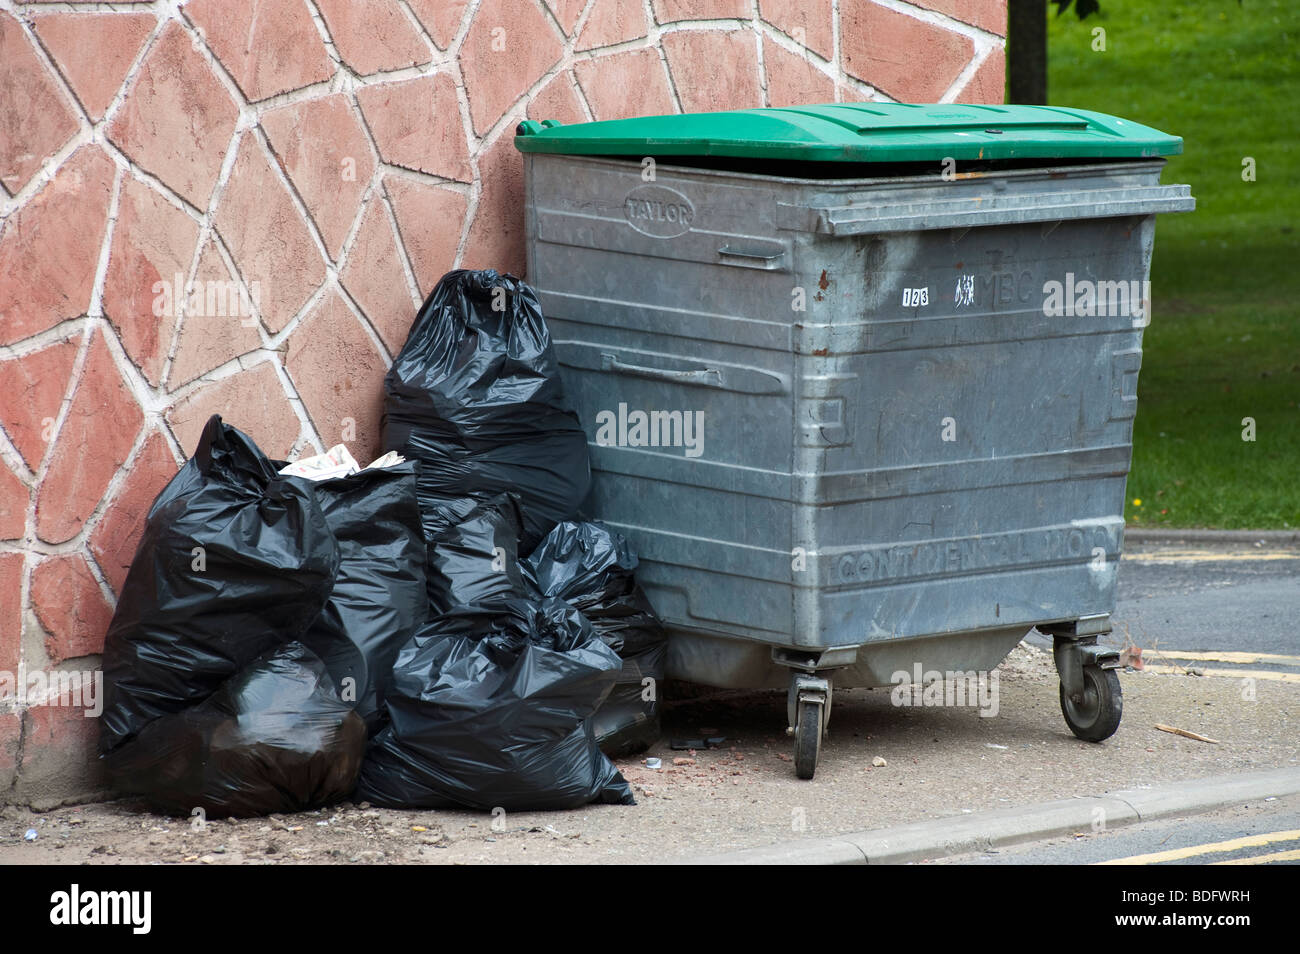 Wheeled waste bin and black rubbish bags awaiting collection - Stock Image